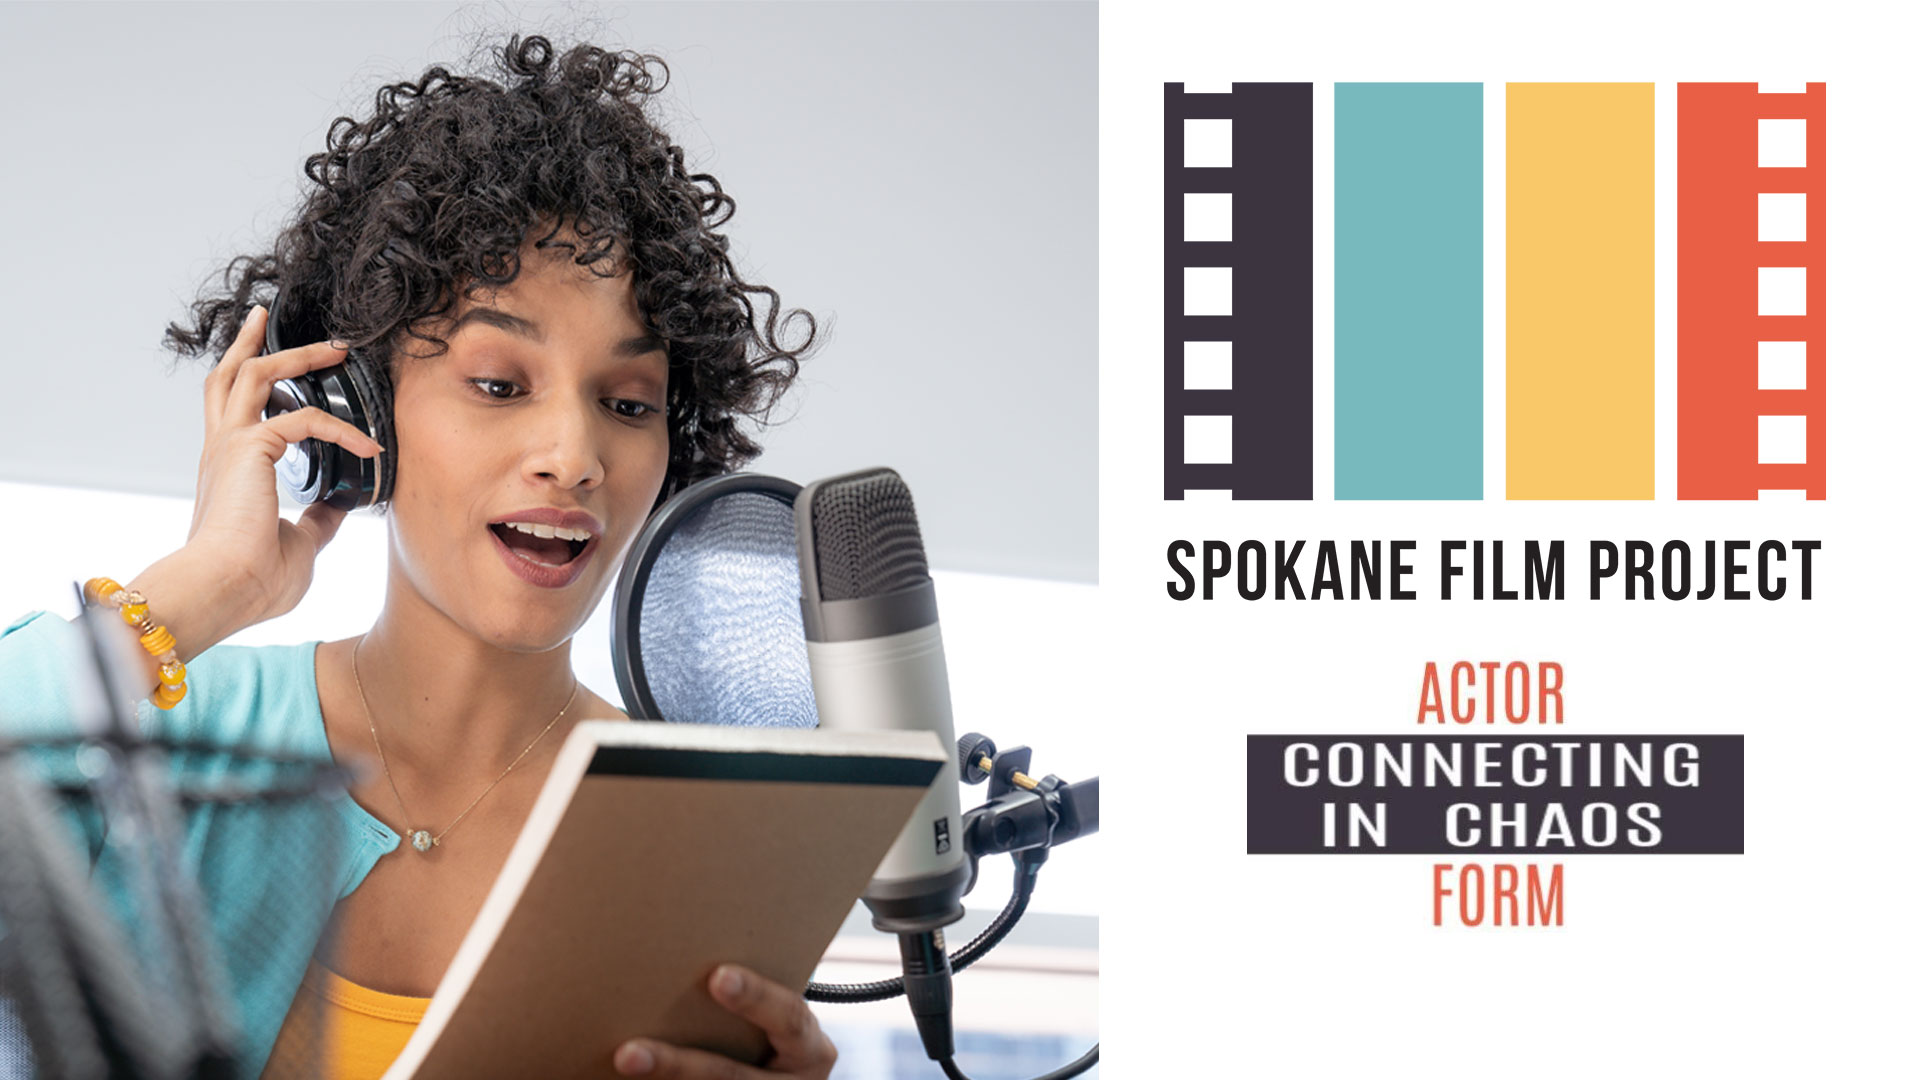 Spokane Film Project Connecting in Chaos Actor Form an image of a woman reading into a microphone